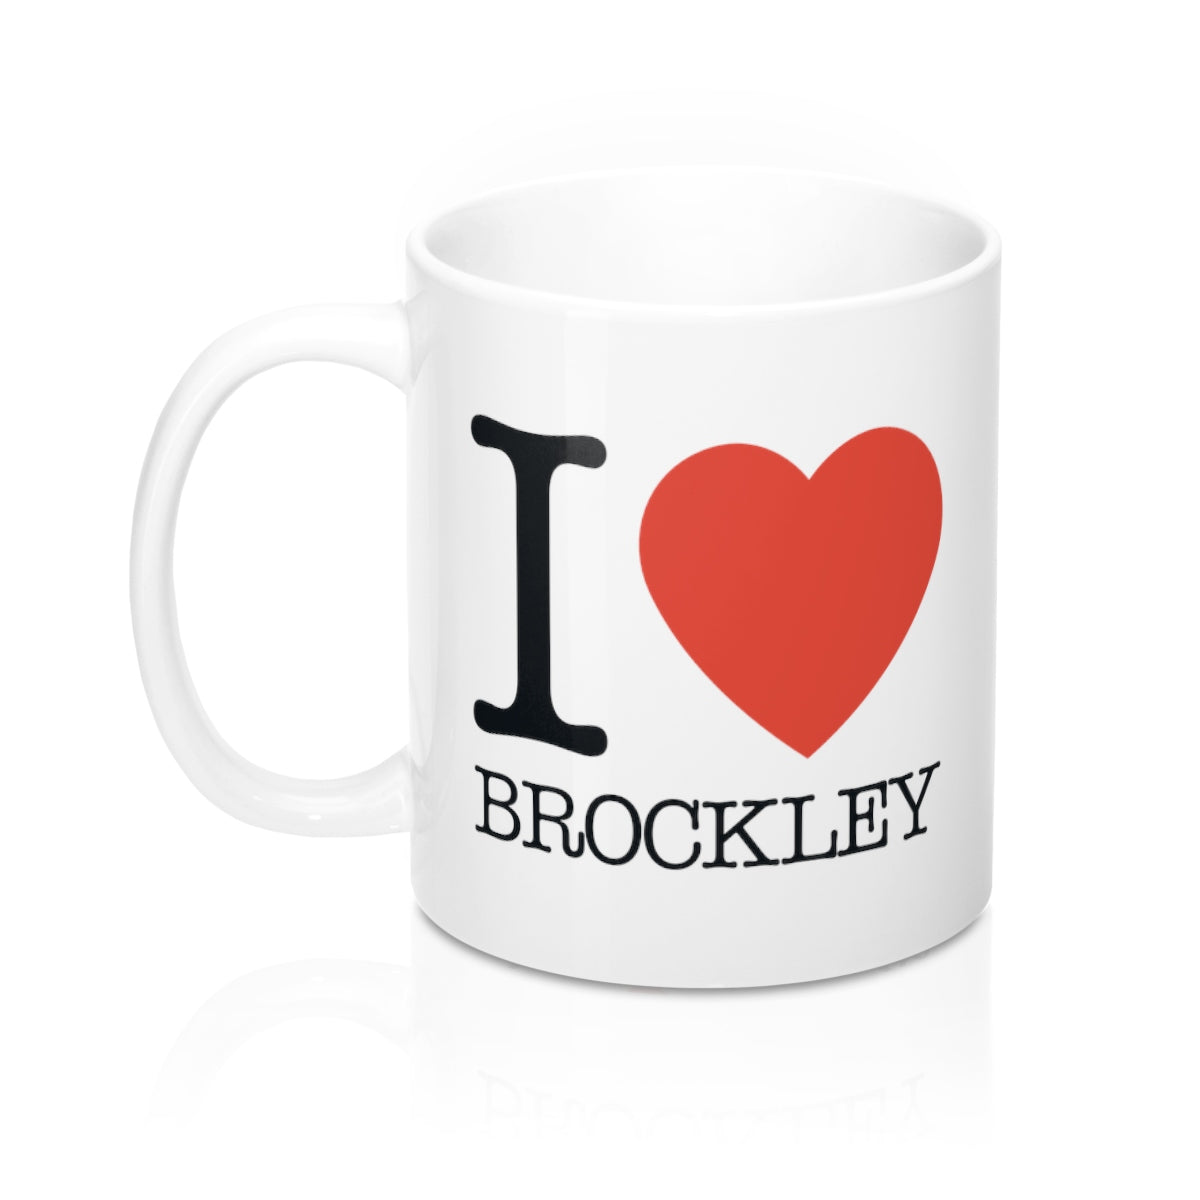 I Heart Brockley Mug